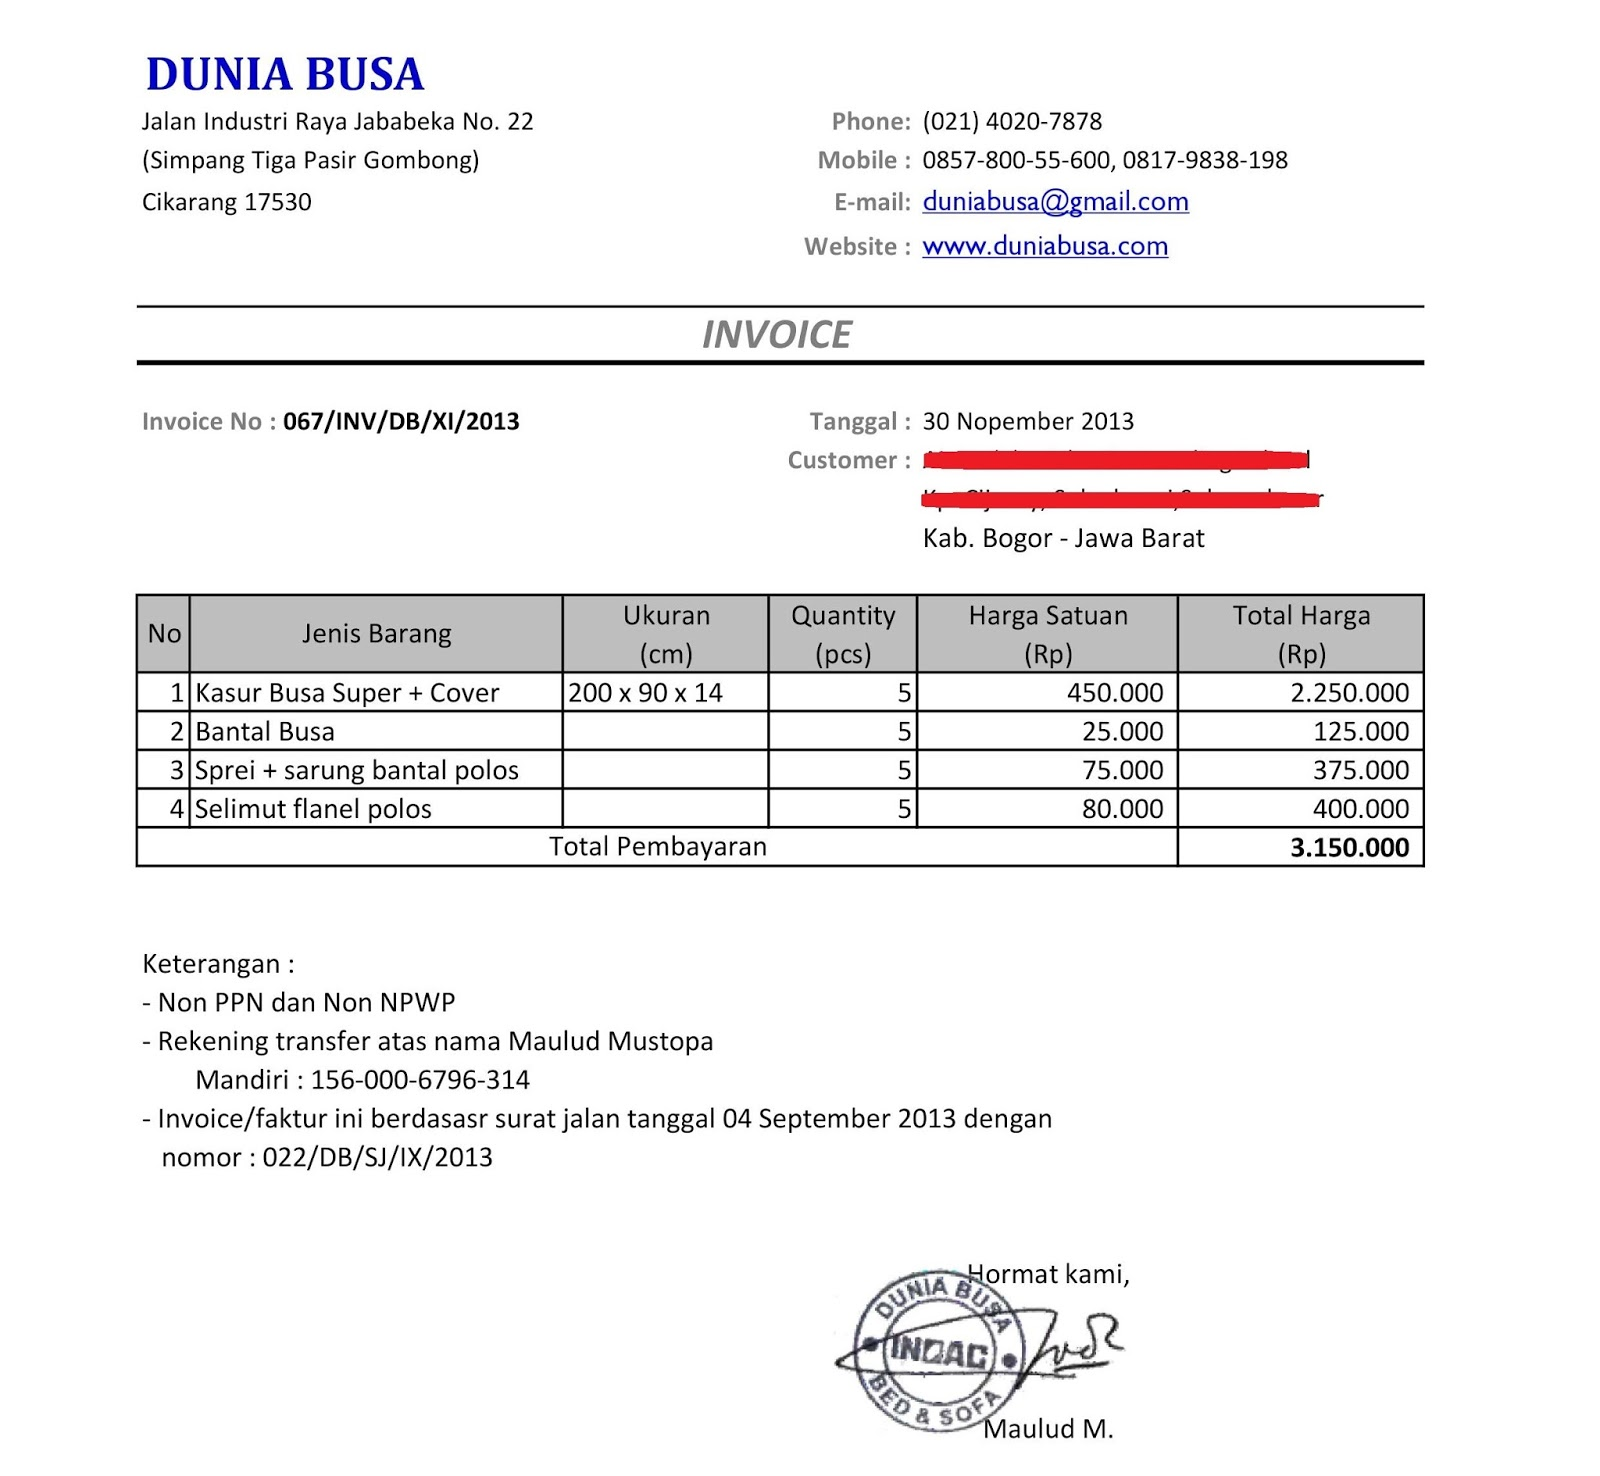 Maidofhonortoastus  Unusual Free Invoice Online  Create Invoice Online  Invoice Template  With Lovely Contoh Format Invoice Atau Surat Tagihan  Brankas Arsip  Free Invoice Online With Attractive Quickbooks Invoice Templates Free Also What Is The Difference Between Msrp And Invoice In Addition Template Of An Invoice And Order Invoices Online As Well As Acura Mdx Invoice Price Additionally Ford Invoice Prices From Sklepco With Maidofhonortoastus  Lovely Free Invoice Online  Create Invoice Online  Invoice Template  With Attractive Contoh Format Invoice Atau Surat Tagihan  Brankas Arsip  Free Invoice Online And Unusual Quickbooks Invoice Templates Free Also What Is The Difference Between Msrp And Invoice In Addition Template Of An Invoice From Sklepco